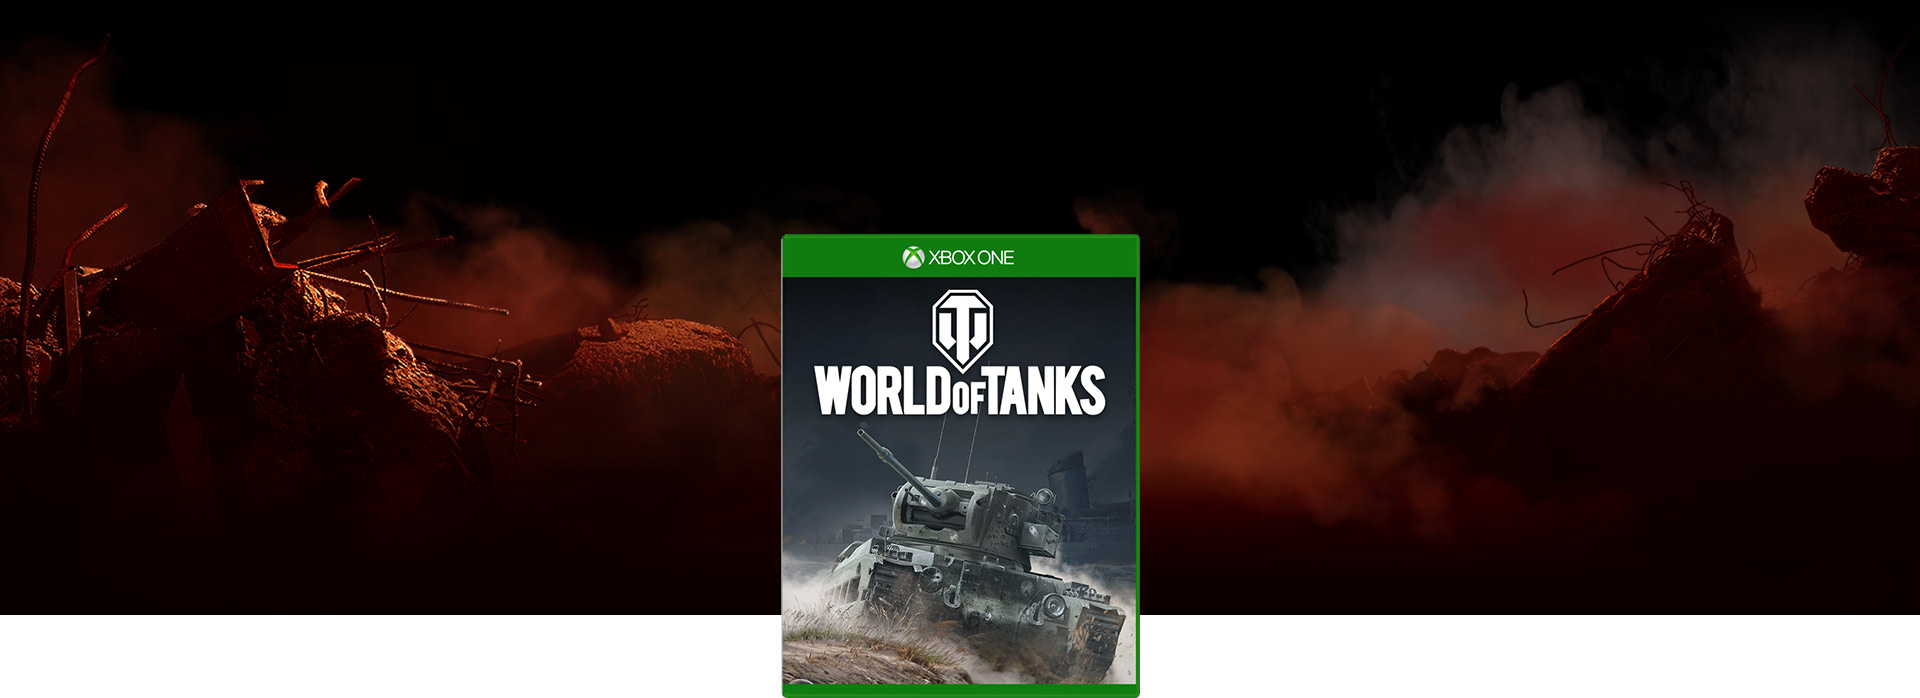 World of Tanks 包裝圖